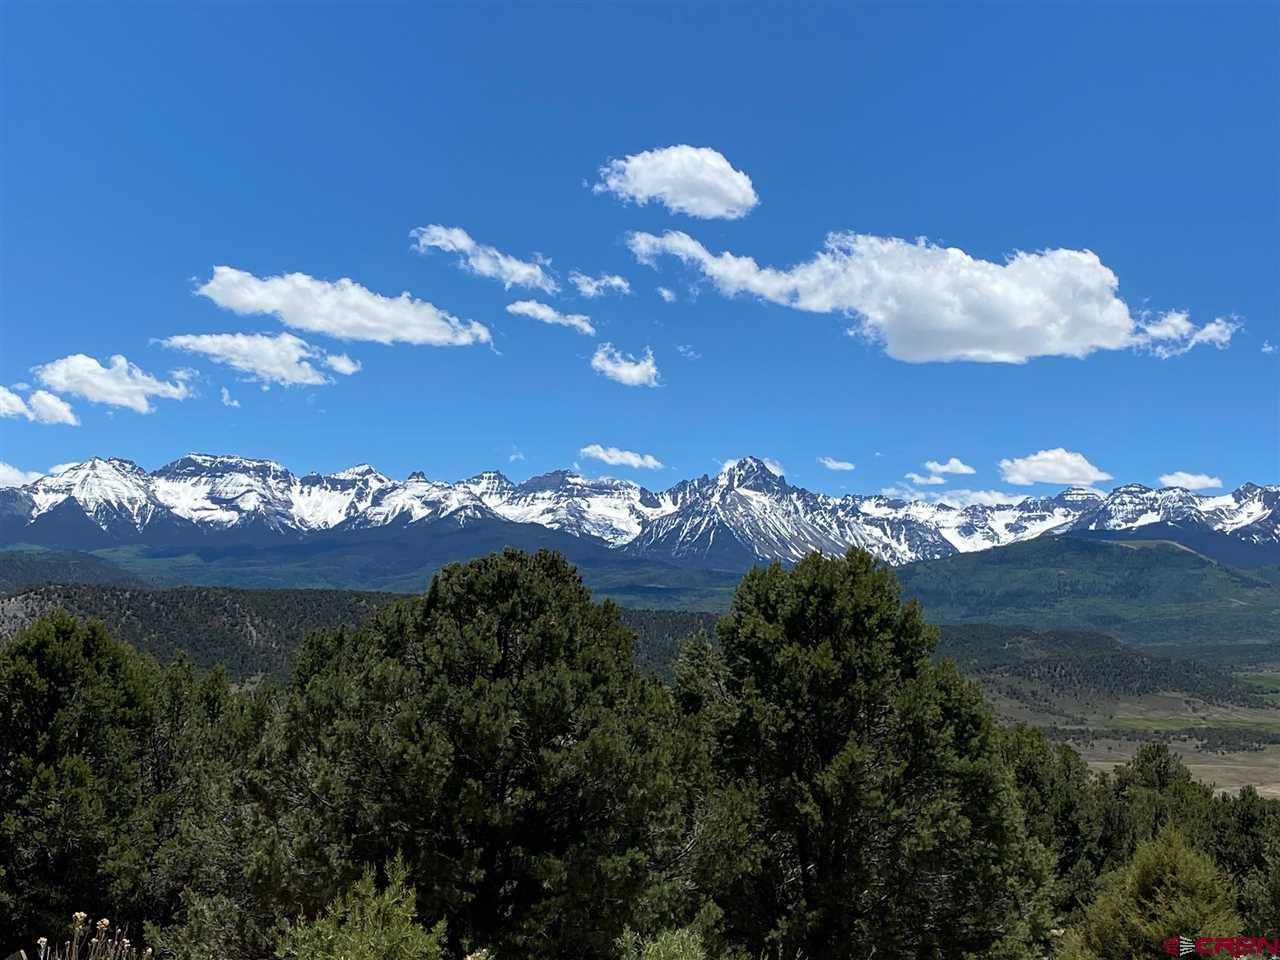 Were you looking for mountain views?  Well look no more.  The purchase price includes HUGE San Juan Mountain views and equally as HUGE valley views.  This parcel is located at the end of a cul-de-sac, and  is adjacent to a private 8 acre parcel to the east and an 8 acre open space to the west which makes the privacy factor immense.  The trees are a mix of tall Ponderosa, Juniper and Pinon.  Tri-County water, Black Hills Natural gas and San Miguel power are on the property line.  An engineered septic would be required.  Pleasant Valley has always been a sought after location in the county since it is perched above the valley and has direct views of the mountains.  Short drive to the Town of Ridgway and approximately 45 minutes to the Telluride Ski area.  Don't miss this one!